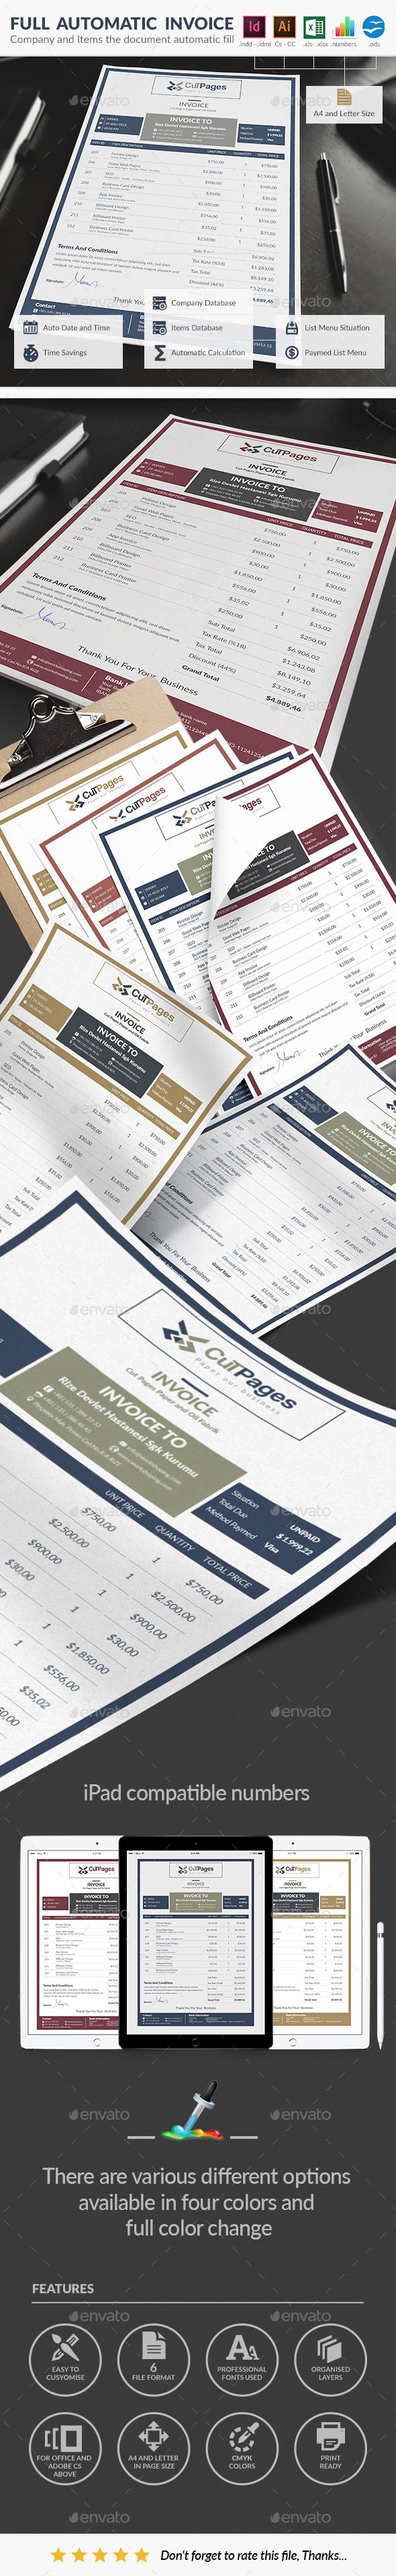 #invoice, #design, invoice template, free invoice template,online invoice,sample invoice,invoice sample,create invoice,invoice format,invoice online,invoice form,invoice maker,invoice example,invoice template free,blank invoice,invoice creator,invoice template pdf,free invoice,invoice template doc,commercial invoice,template for invoice,create invoice online,easy invoice,template invoice,simple invoice,free online invoice,sample of invoice,printable invoice,invoice design,sales invoice,